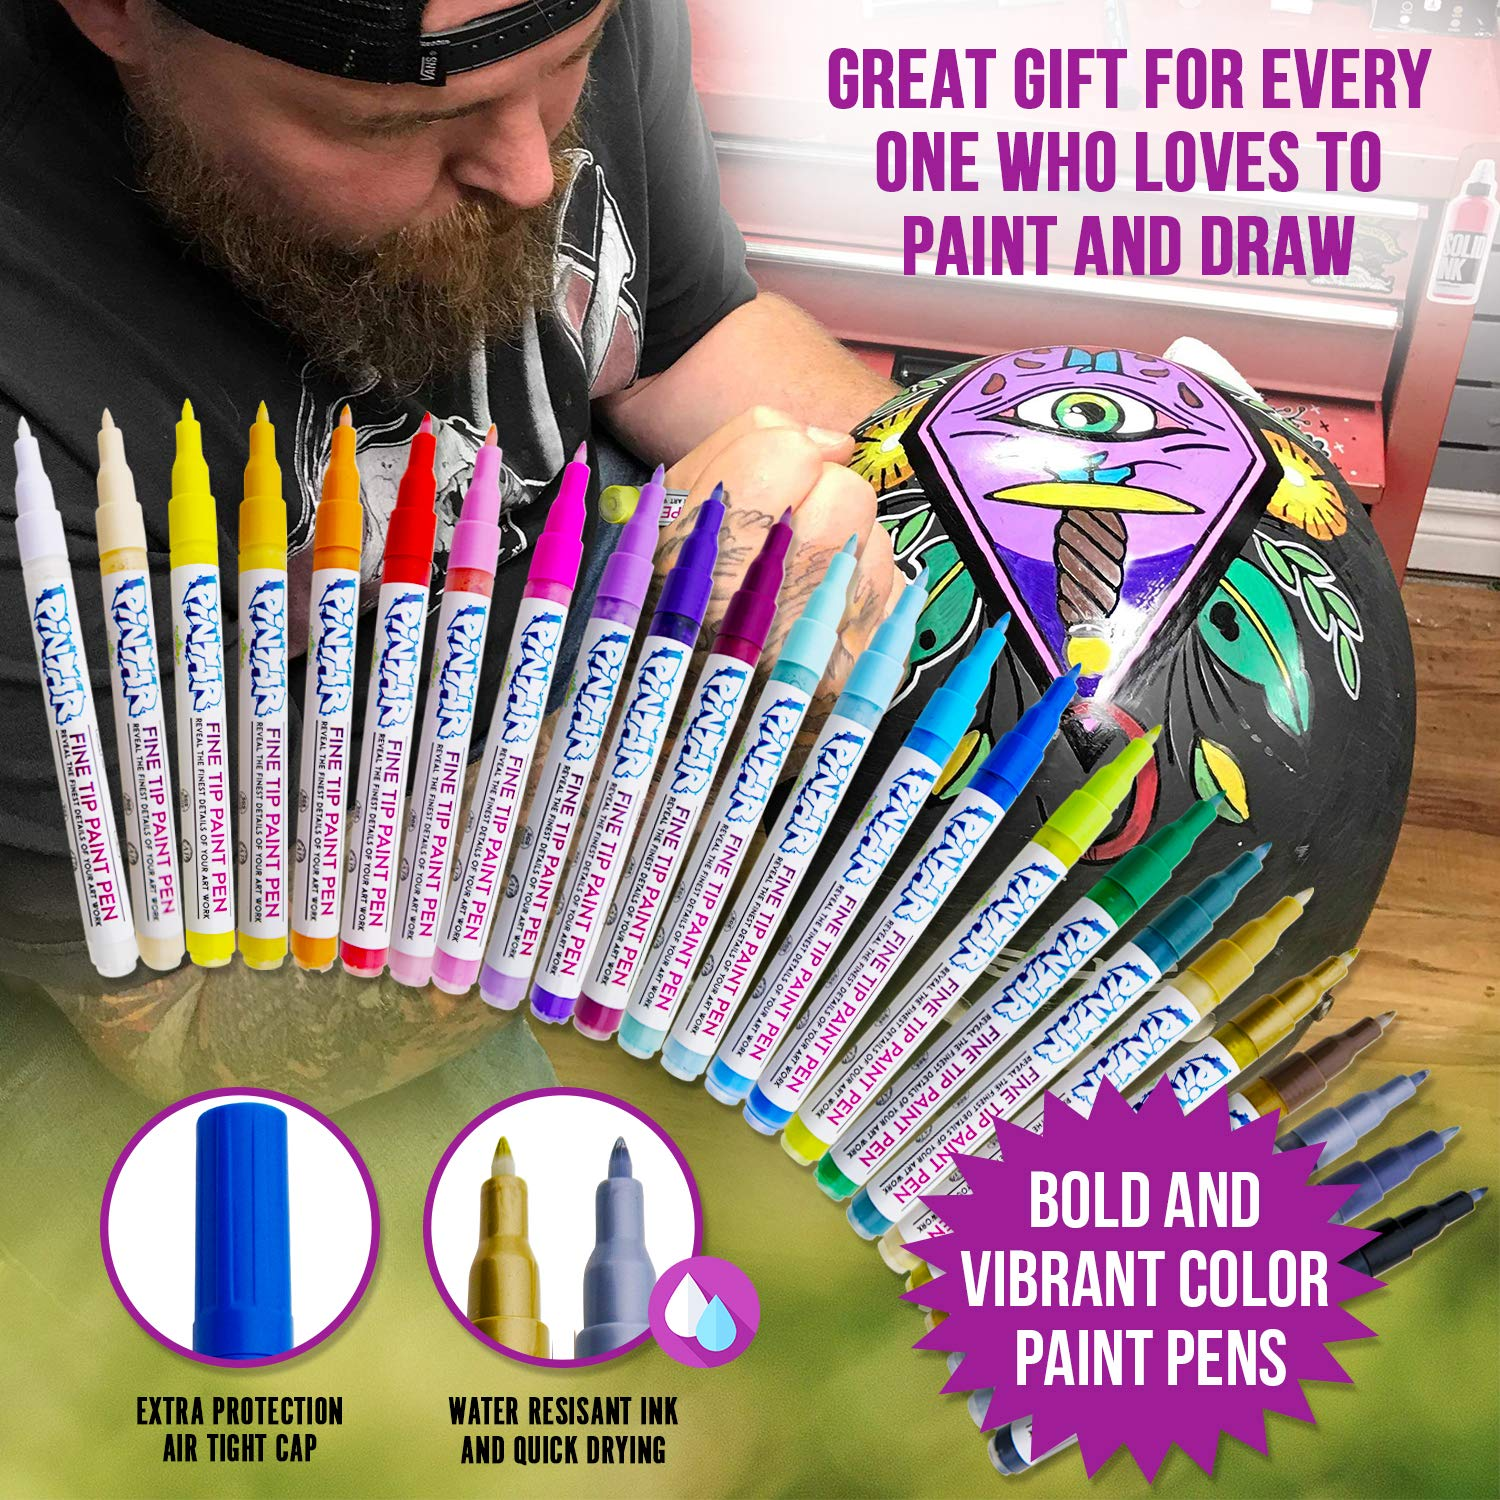 PINTAR - Acrylic Fine Tip Paint Pens For Rock Painting Art - 24 Pack Vibrant Colors for Wood, Glass, Metal and Ceramic - Water Resistant and Quick Drying Ink For Arts & Crafts by PINTAR (Image #9)